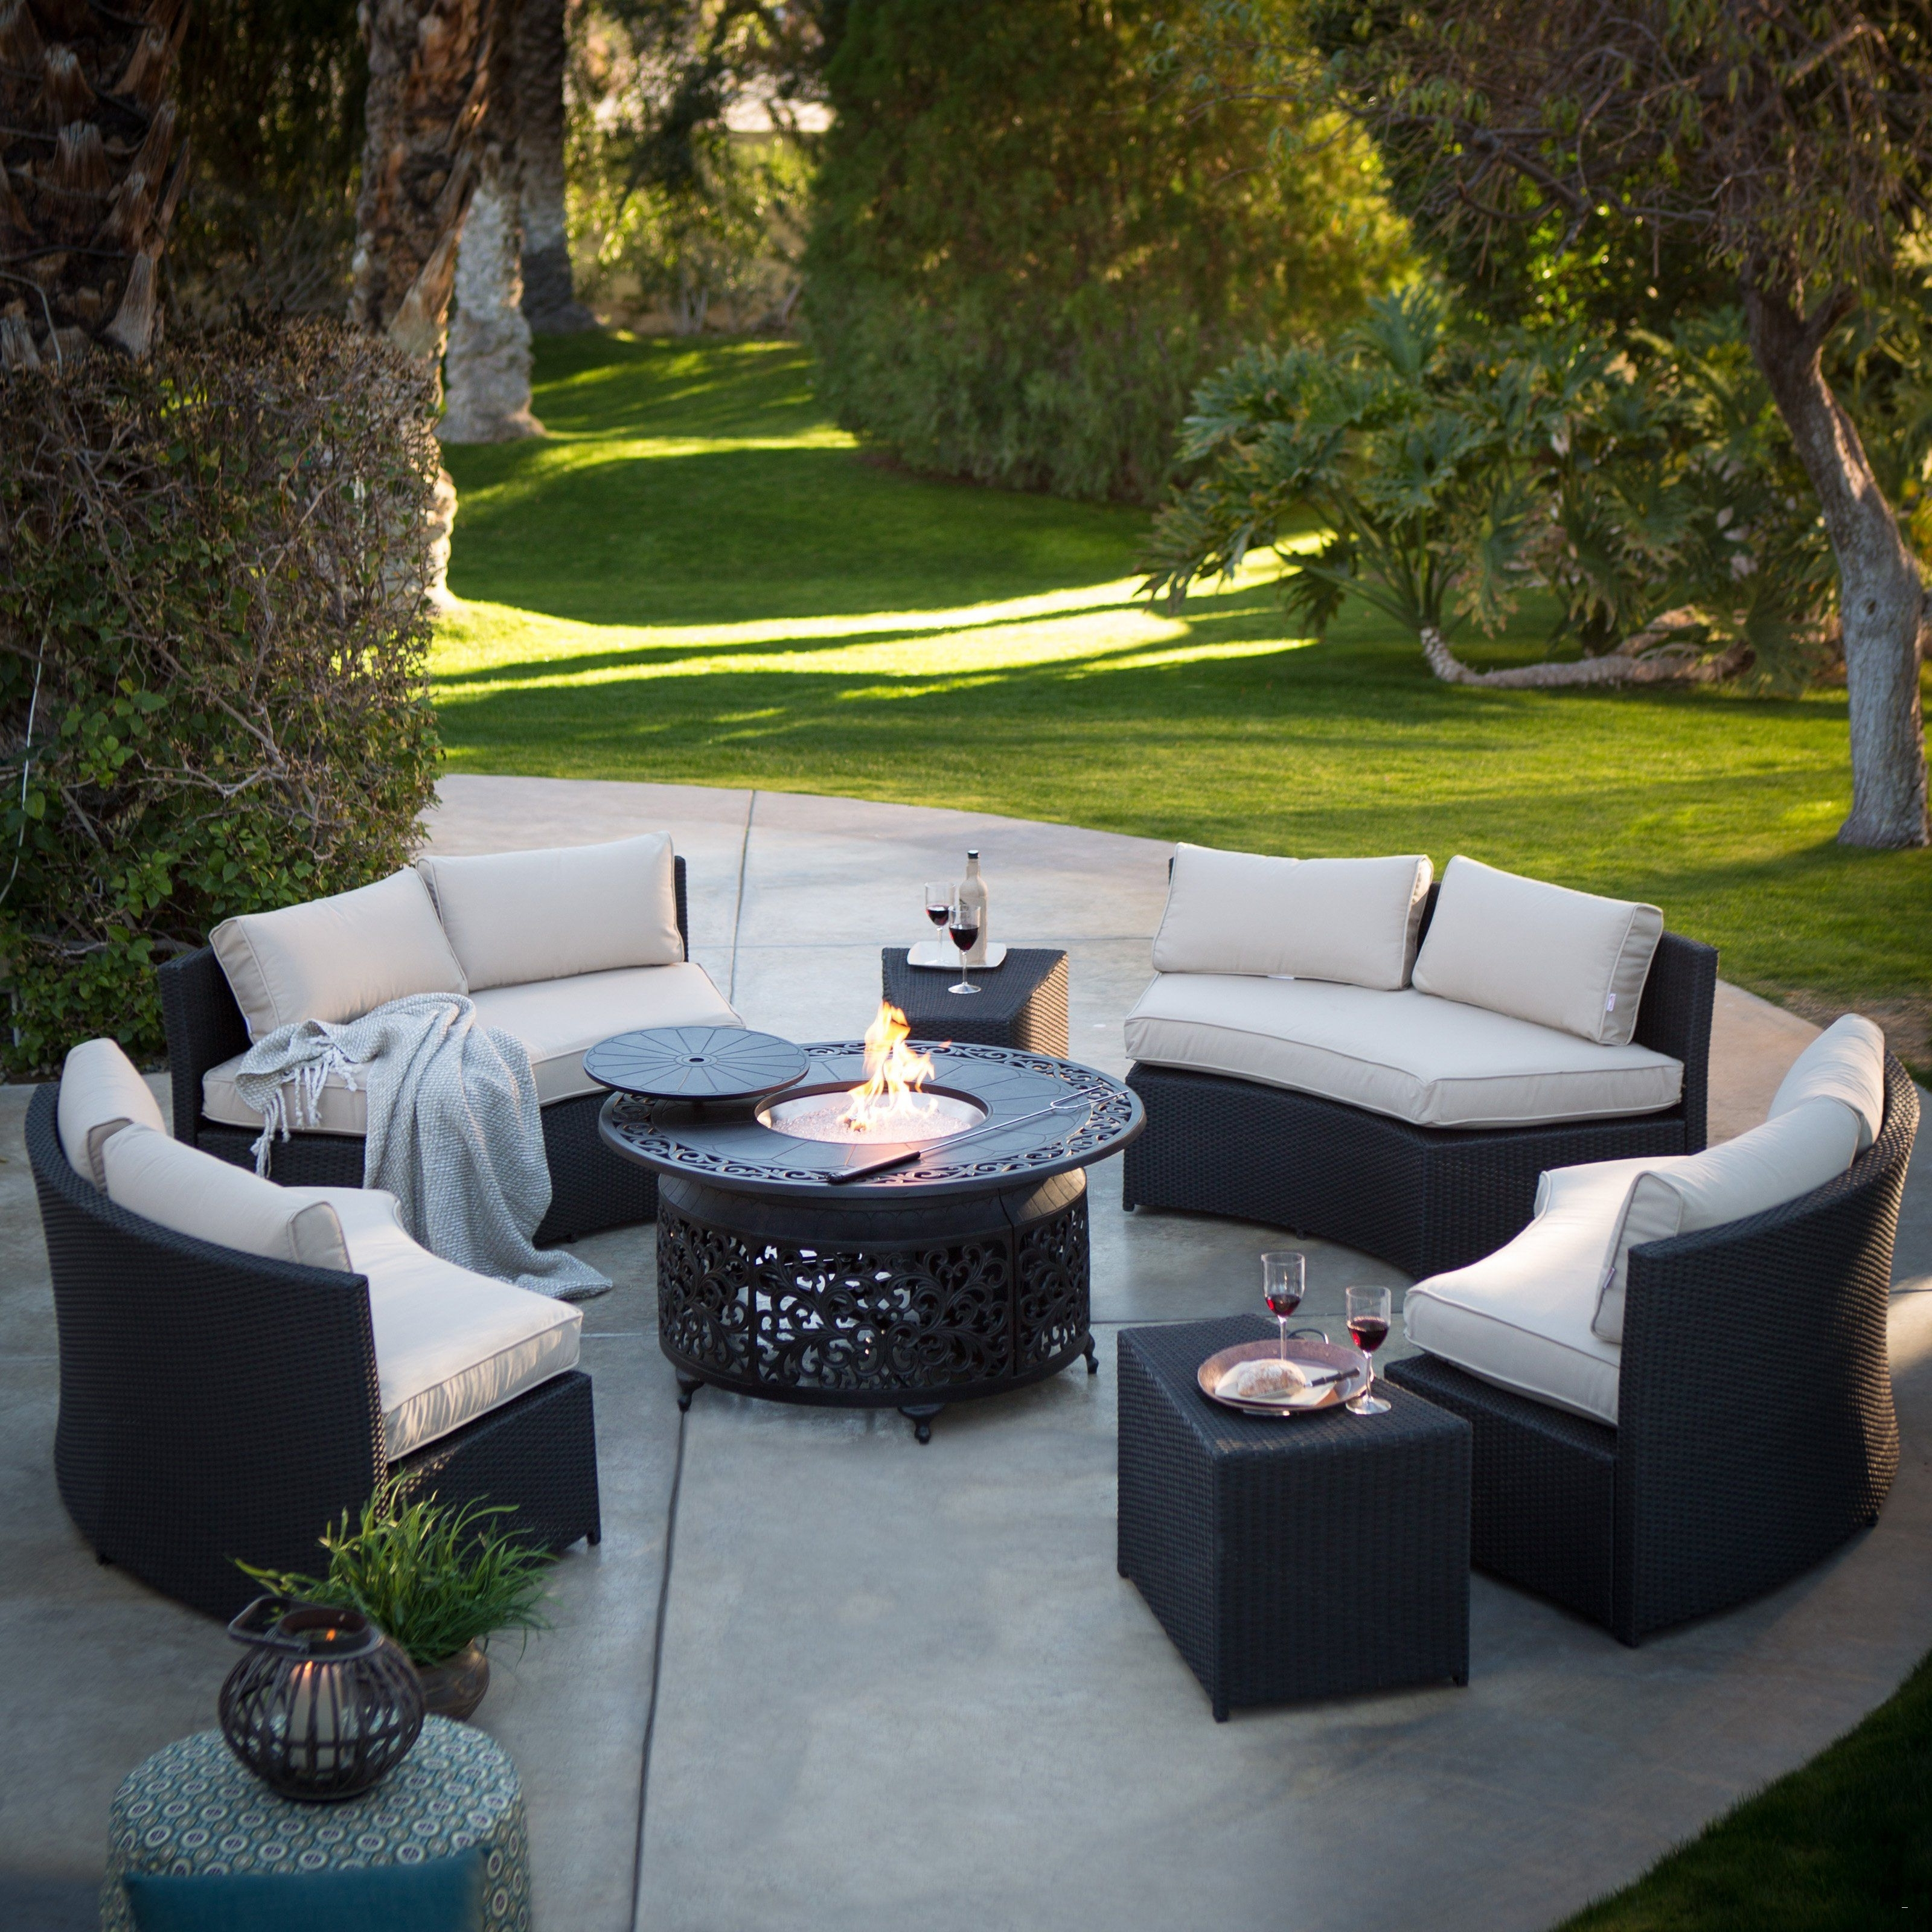 2017 Patio Furniture Conversation Sets With Fire Pit Regarding Cheap Patio Furniture Sets Under 100 – Gorgeous Patio Conversation (View 2 of 15)